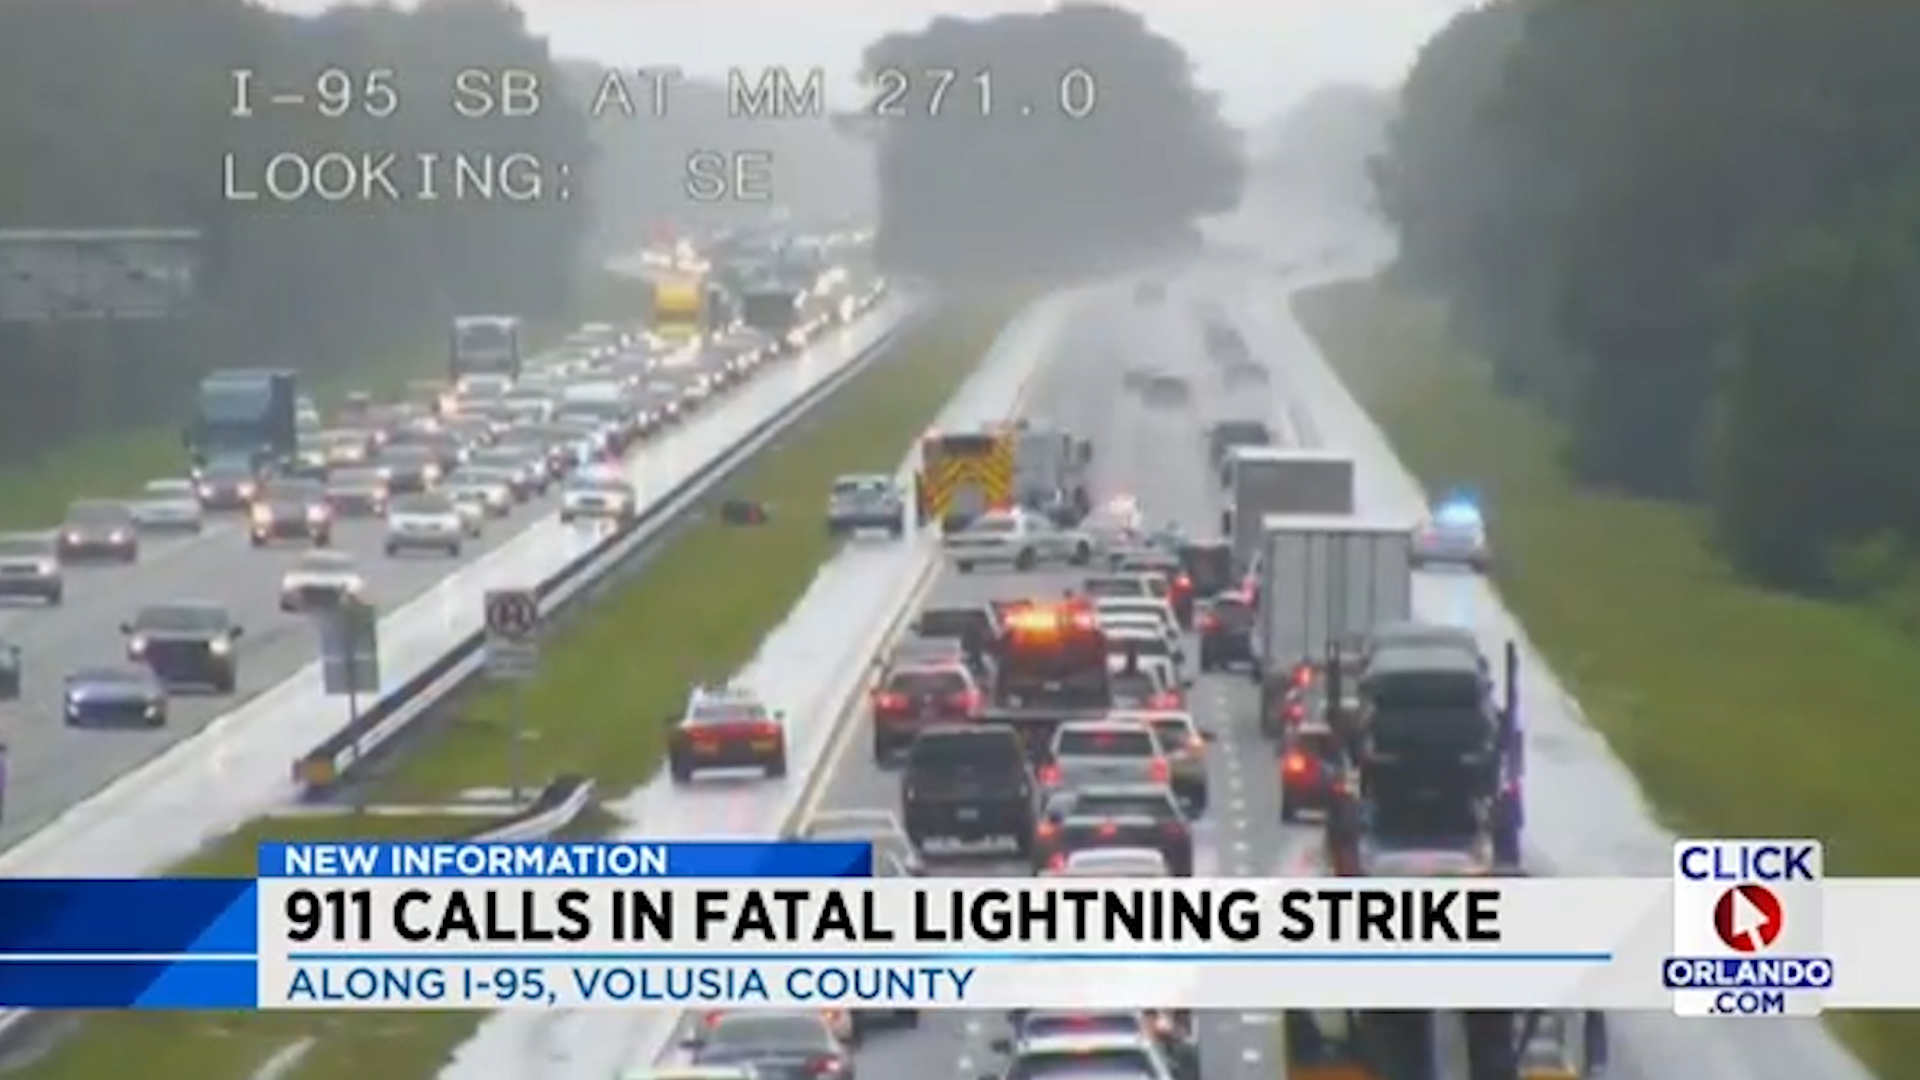 Motorcyclist is struck by lightning on highway